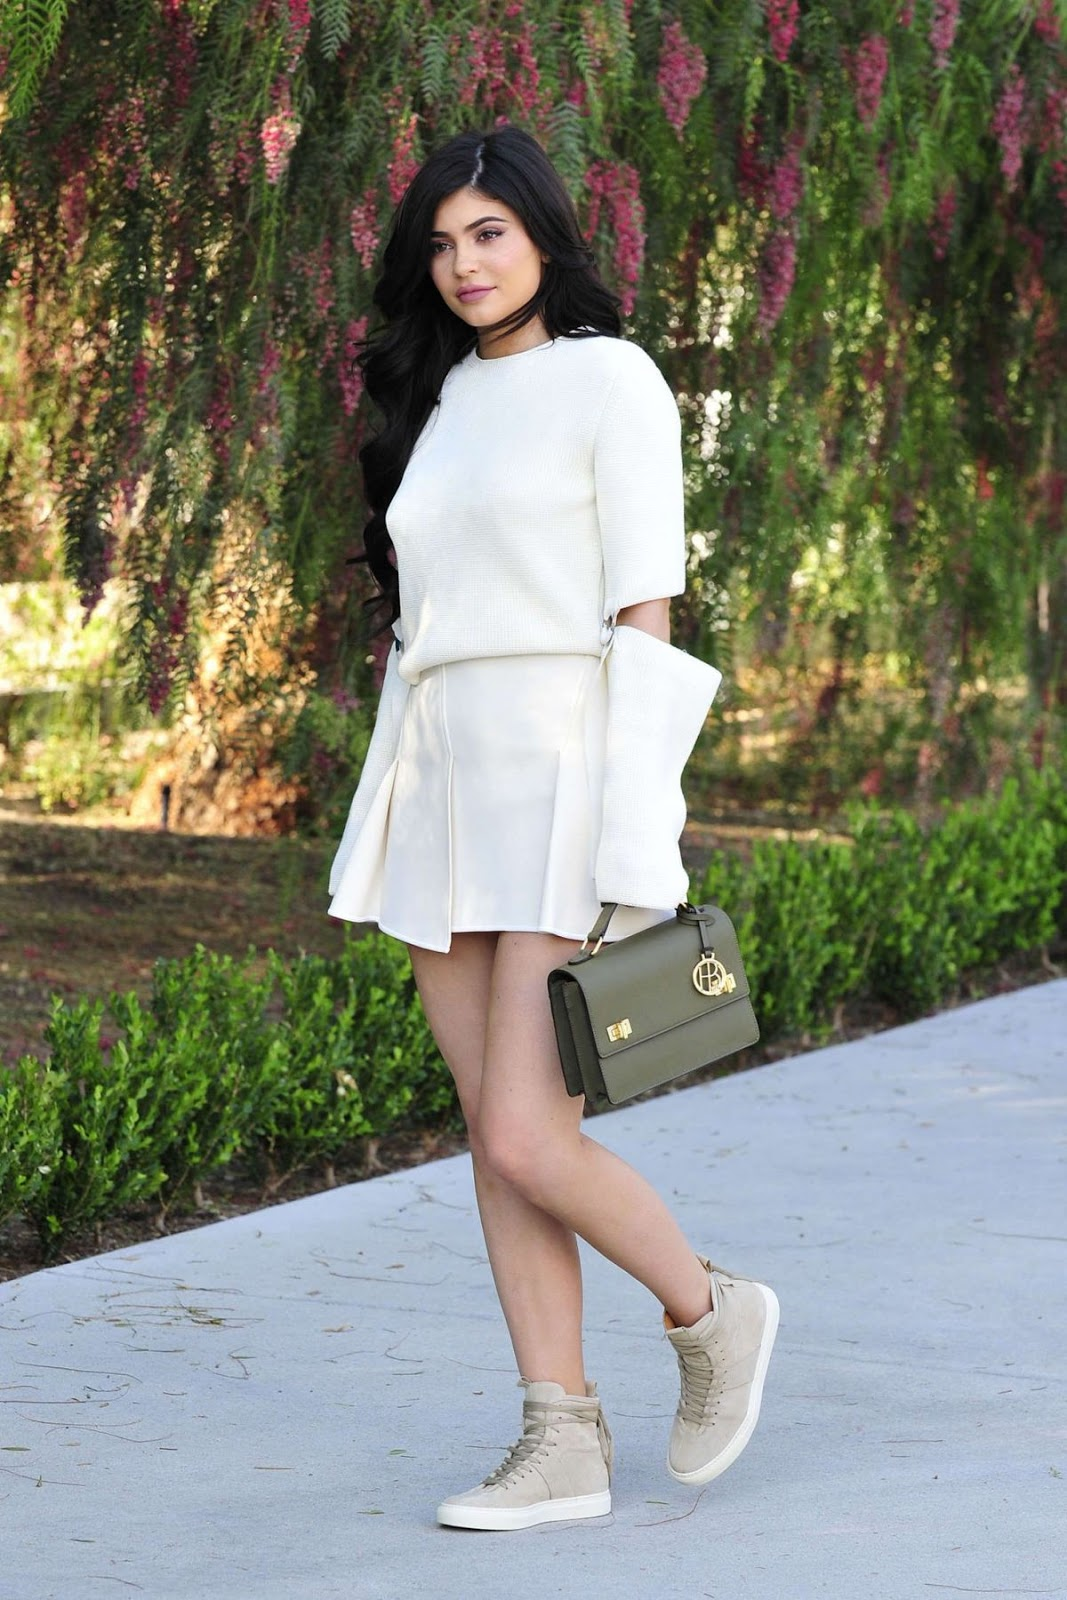 Kylie Jenner Out And About In Beverly Hills HQ Photos